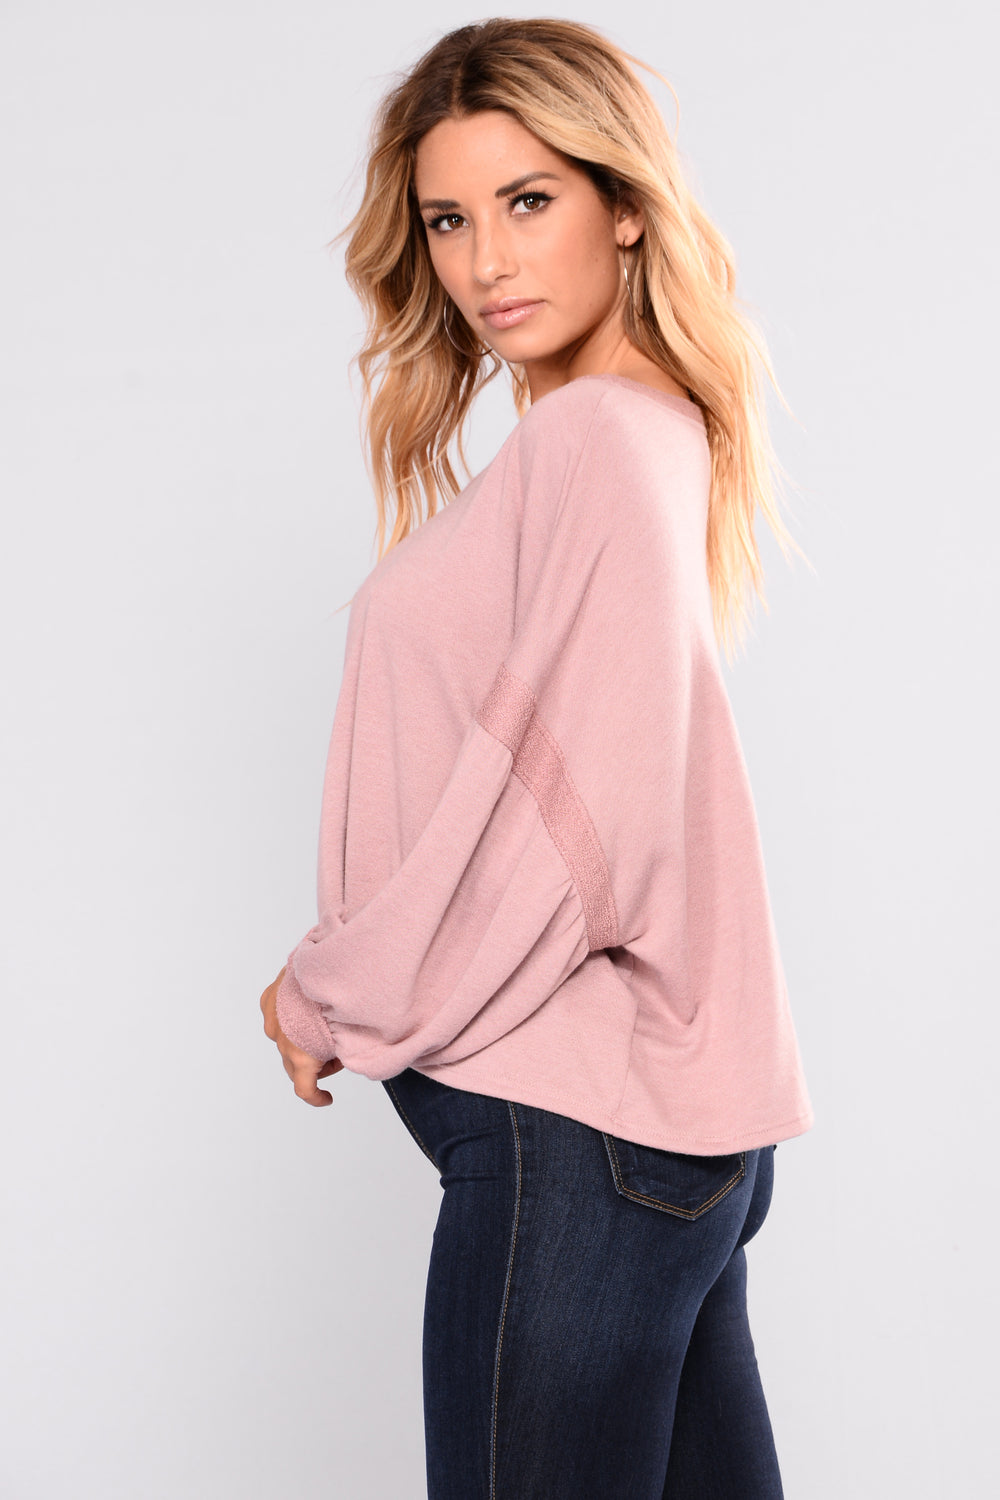 Sunday Snooze Top - Blush